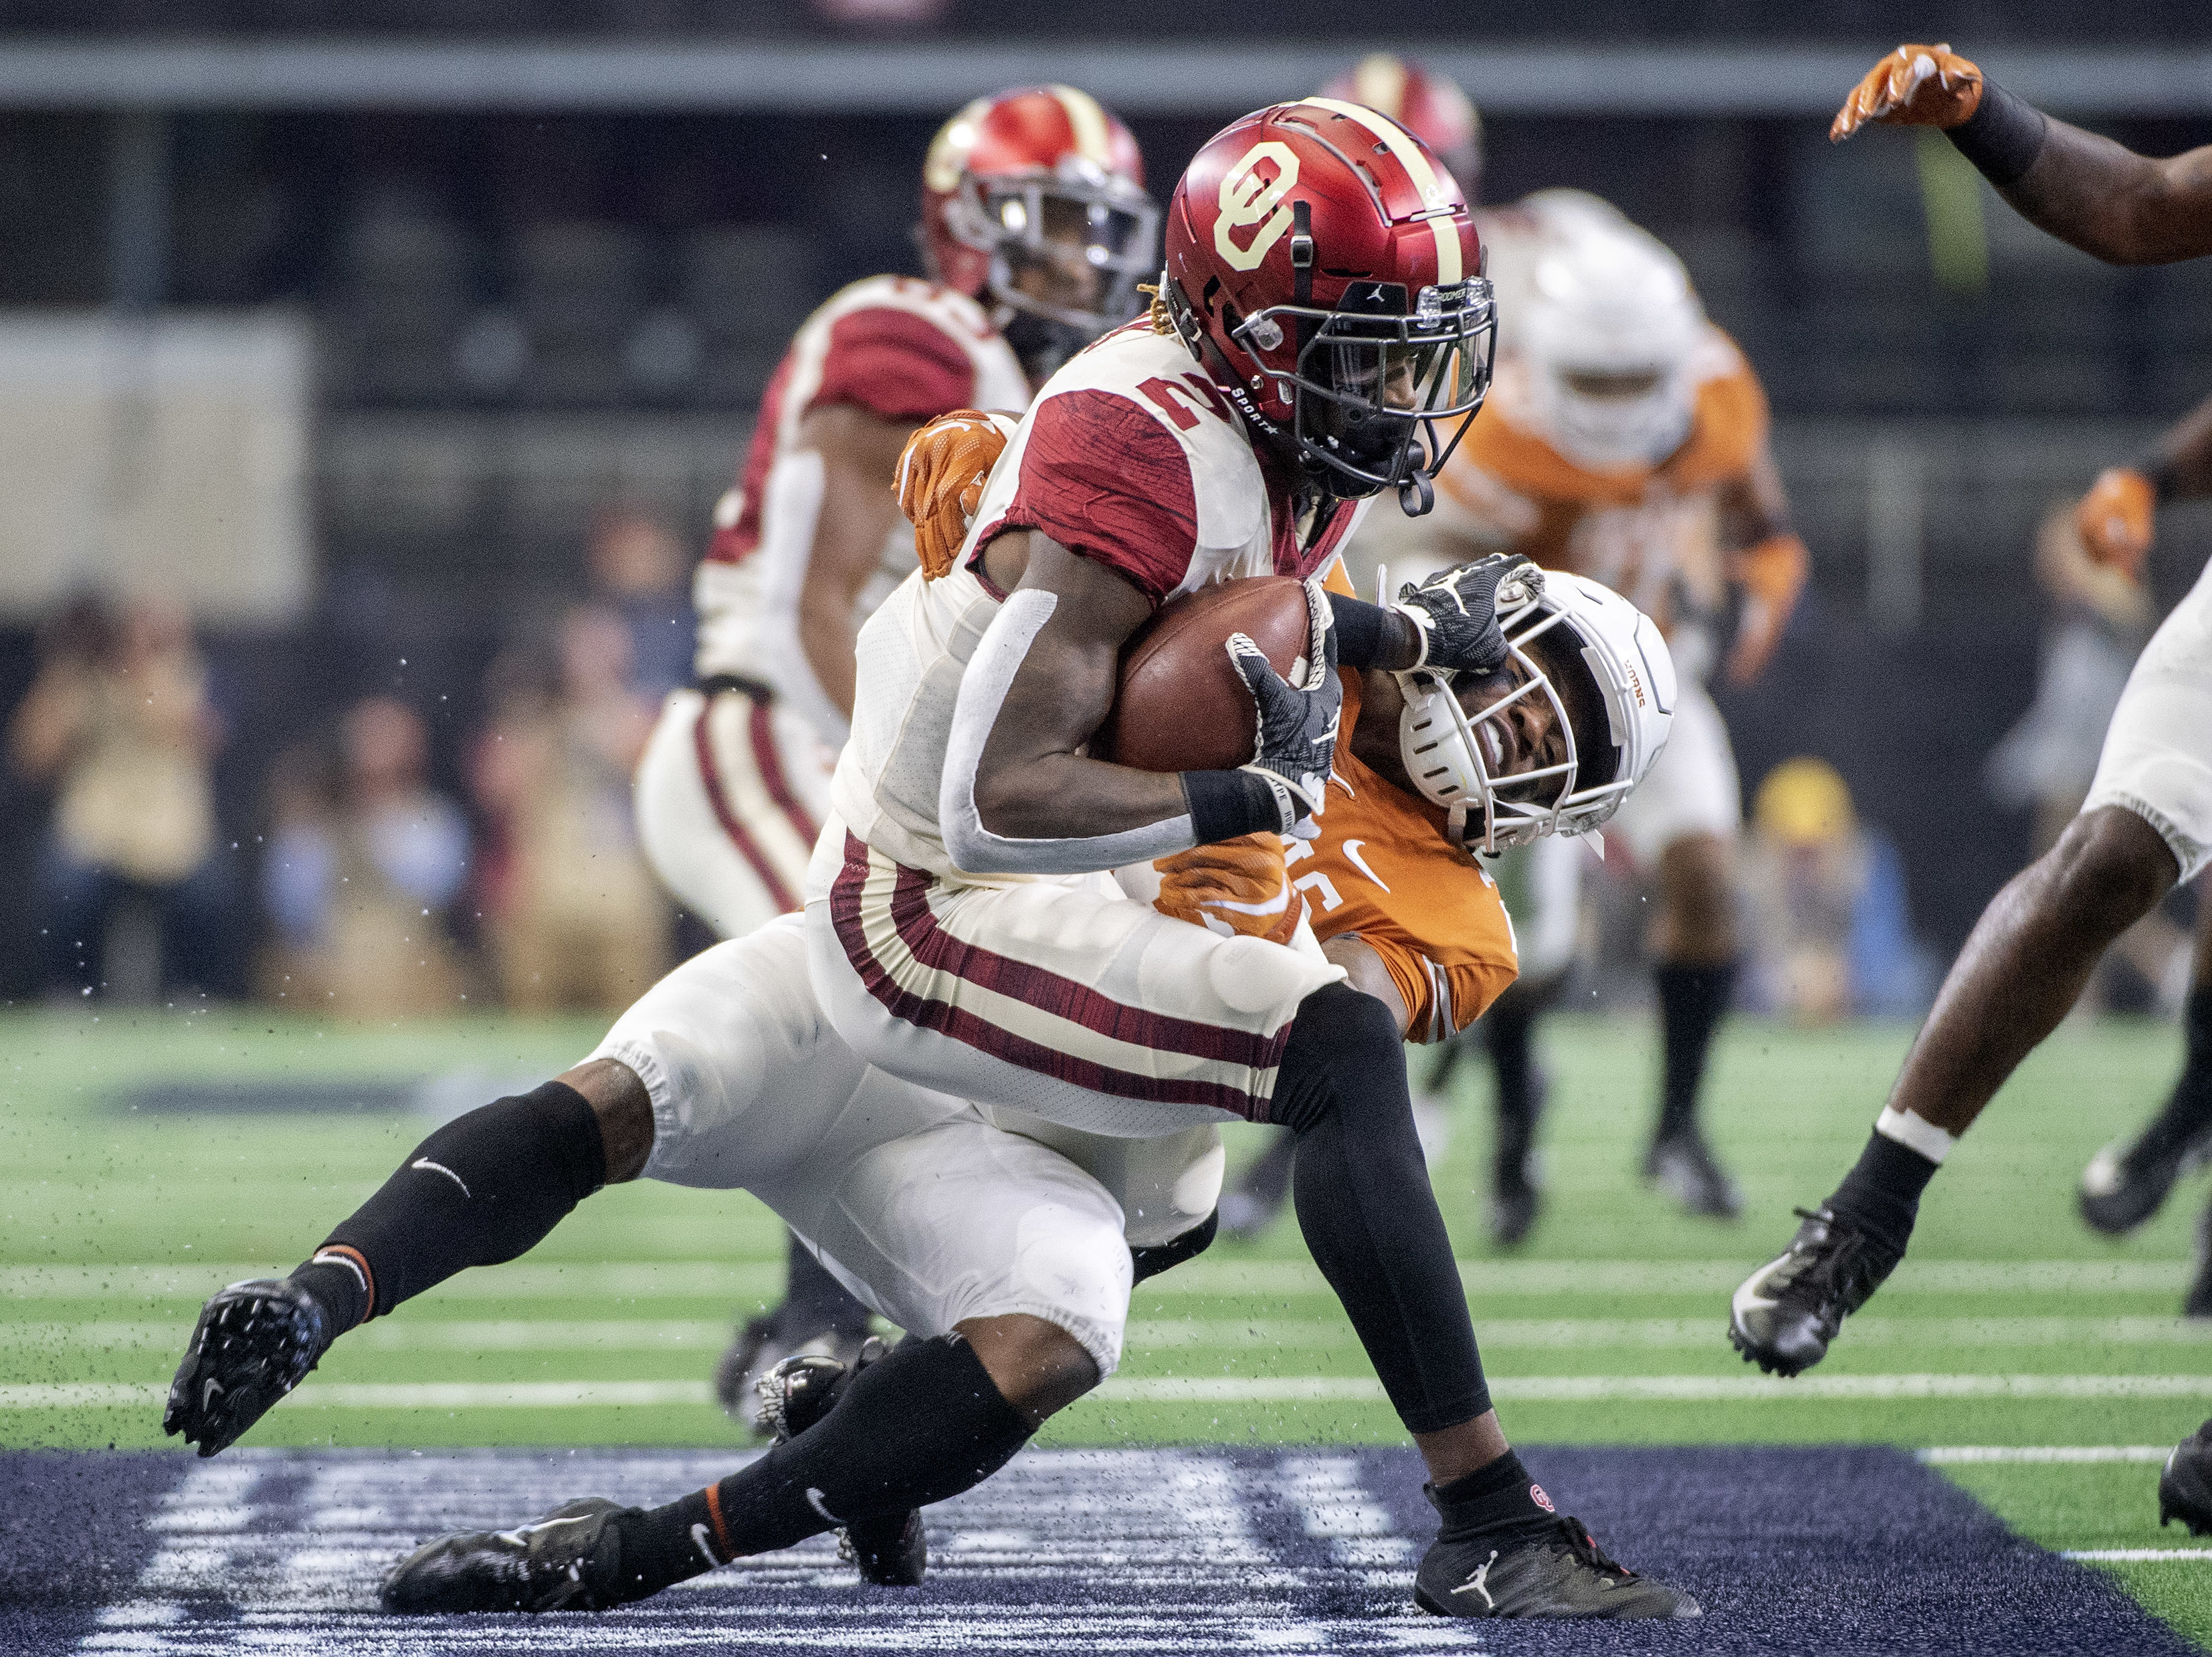 Texas defensive back Josh Thompson (29) brings down Oklahoma punt returner CeeDee Lamb (2) on a punt return during the first half of the Big 12 Conference championship NCAA college football game on Saturday, Dec. 1, 2018, in Arlington, Texas. (AP Photo/Jeffrey McWhorter)